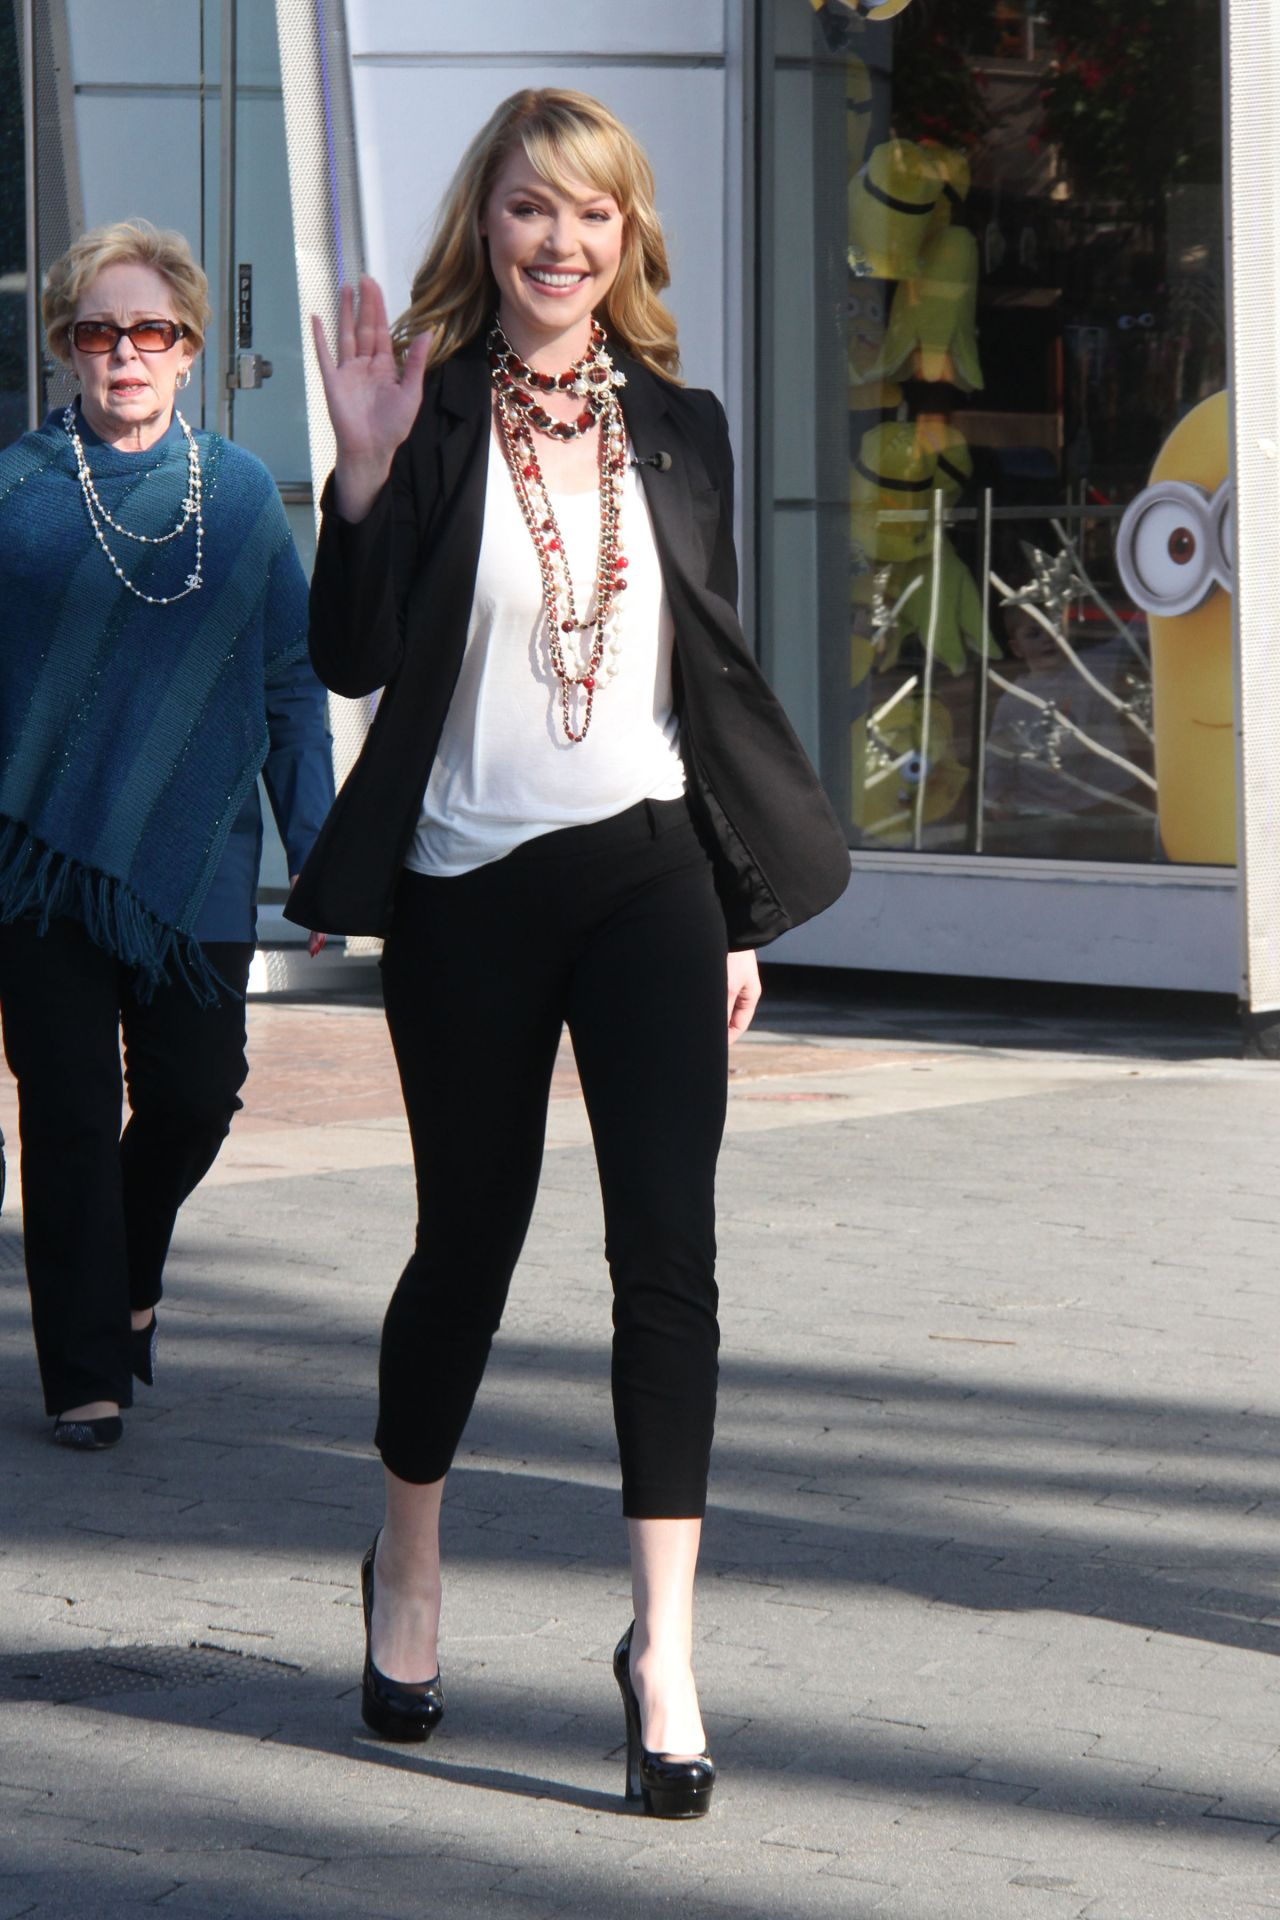 Katherine Heigl - on the Set of Extra - Universal Studios - Jan 2014